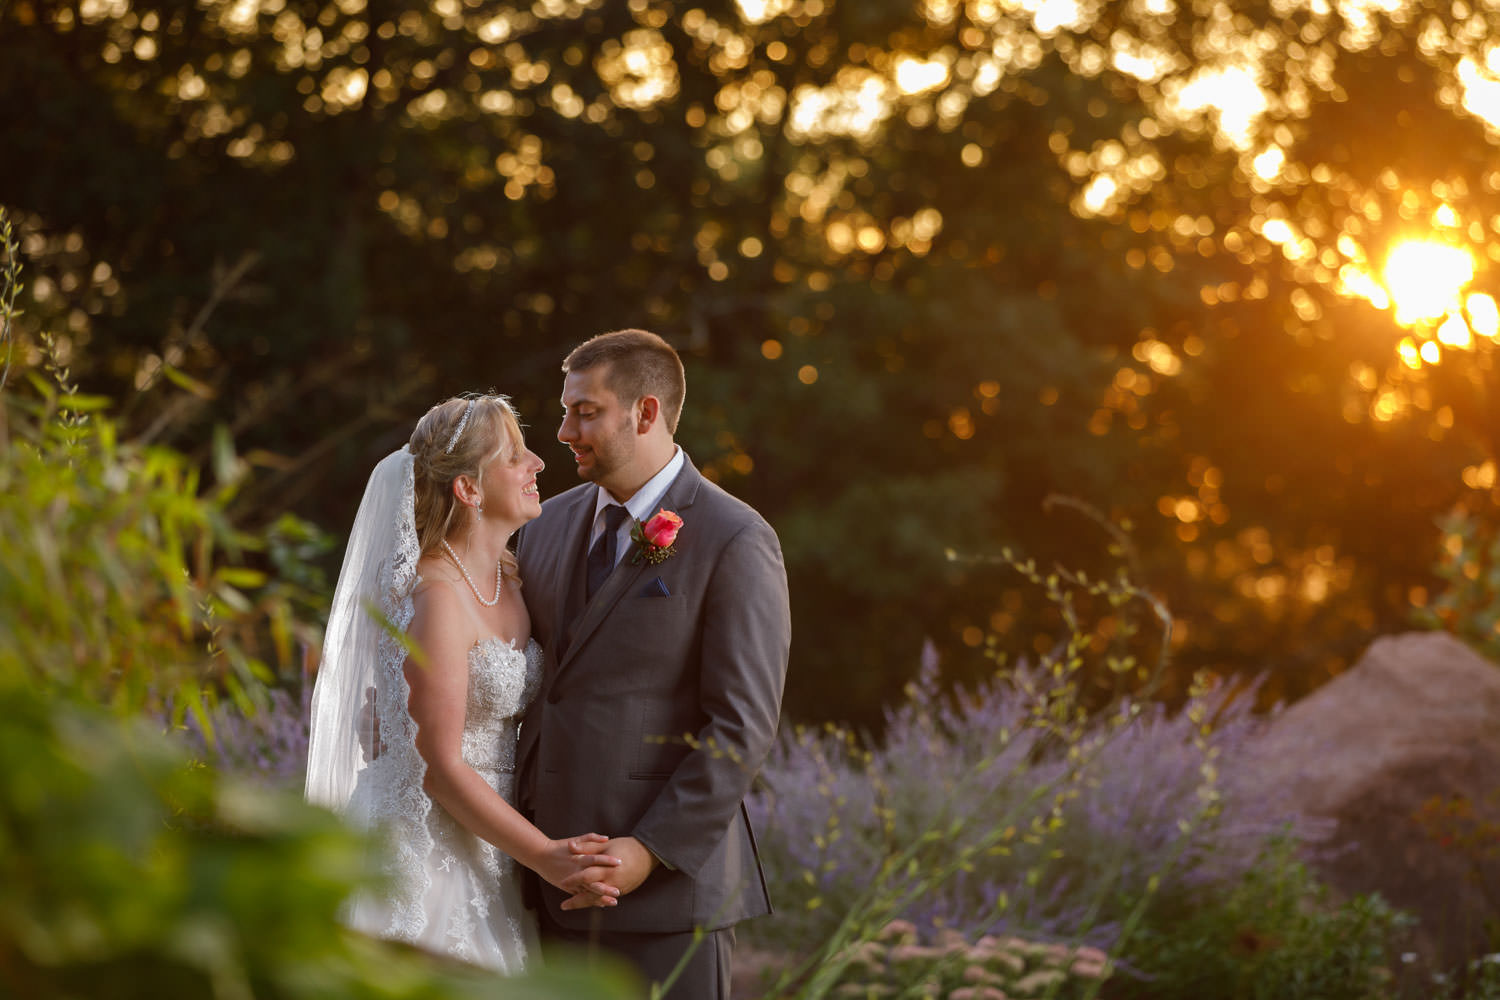 Sunset photo of Bride and Groom in garden